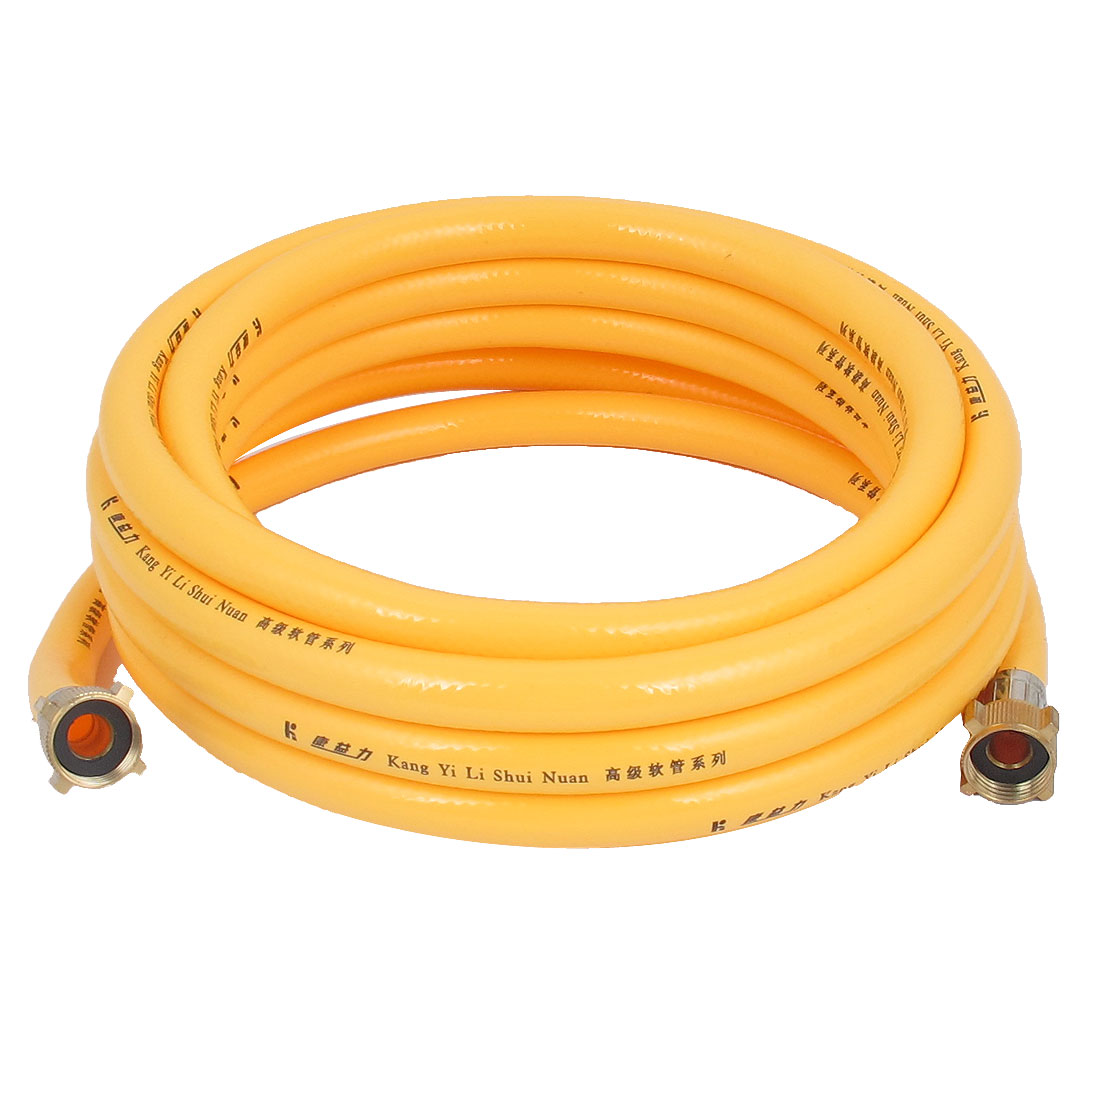 19mm Female Threaded 5M Length Yellow PVC Flexible Garden Watering Water Hose Pipe Tubing